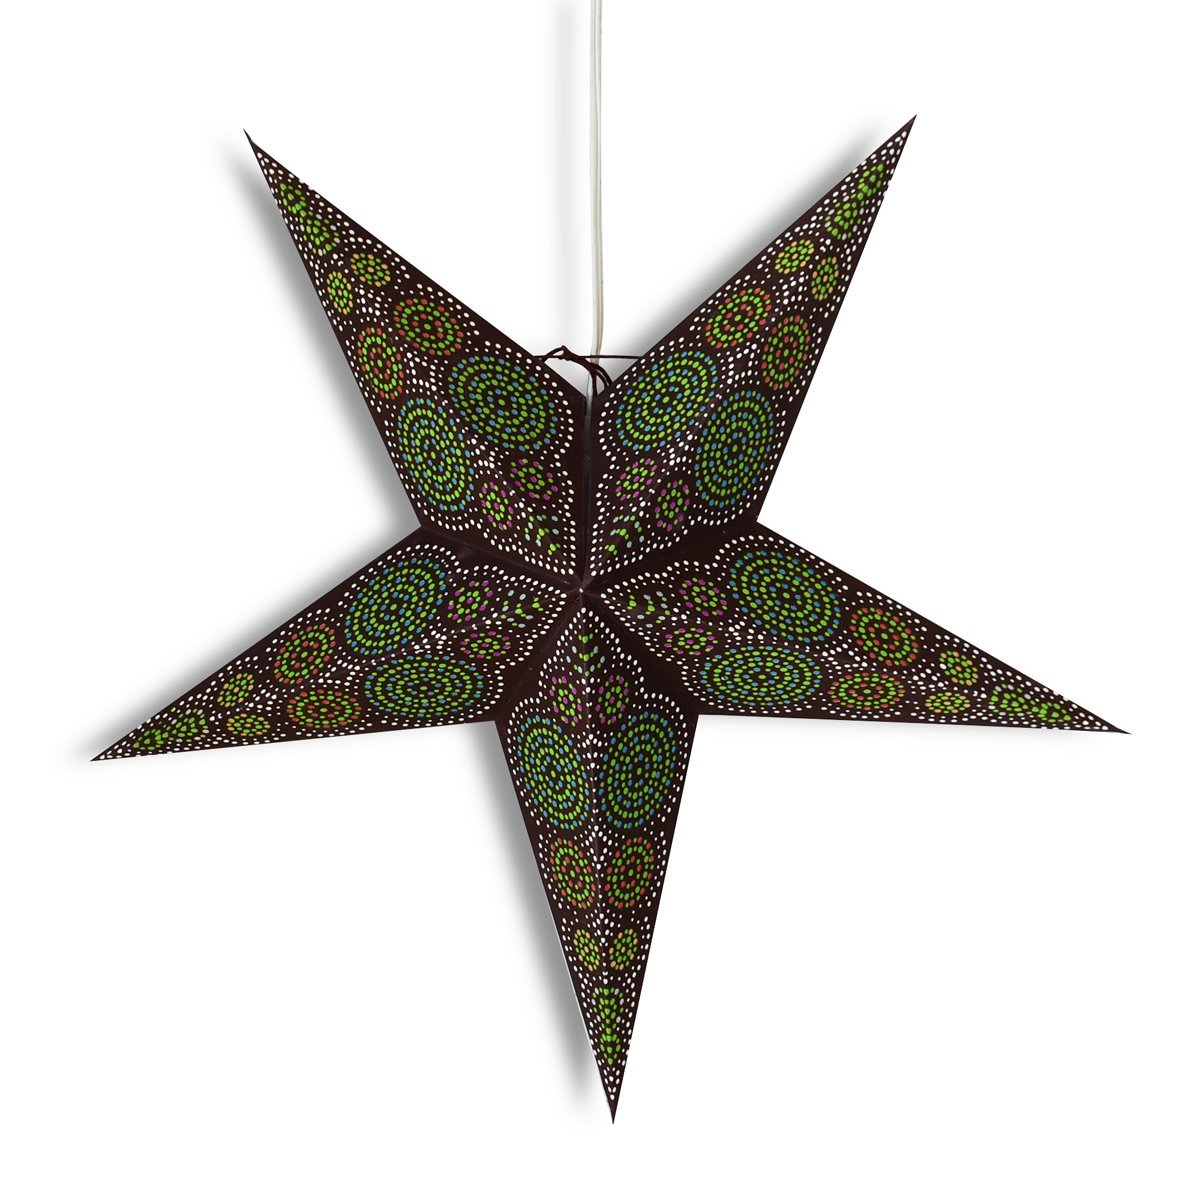 "BLOWOUT 24"" Brown / Green Aussie Paper Star Lantern, Hanging Wedding & Party Decoration - PaperLanternStore.com - Paper Lanterns, Decor, Party Lights & More"